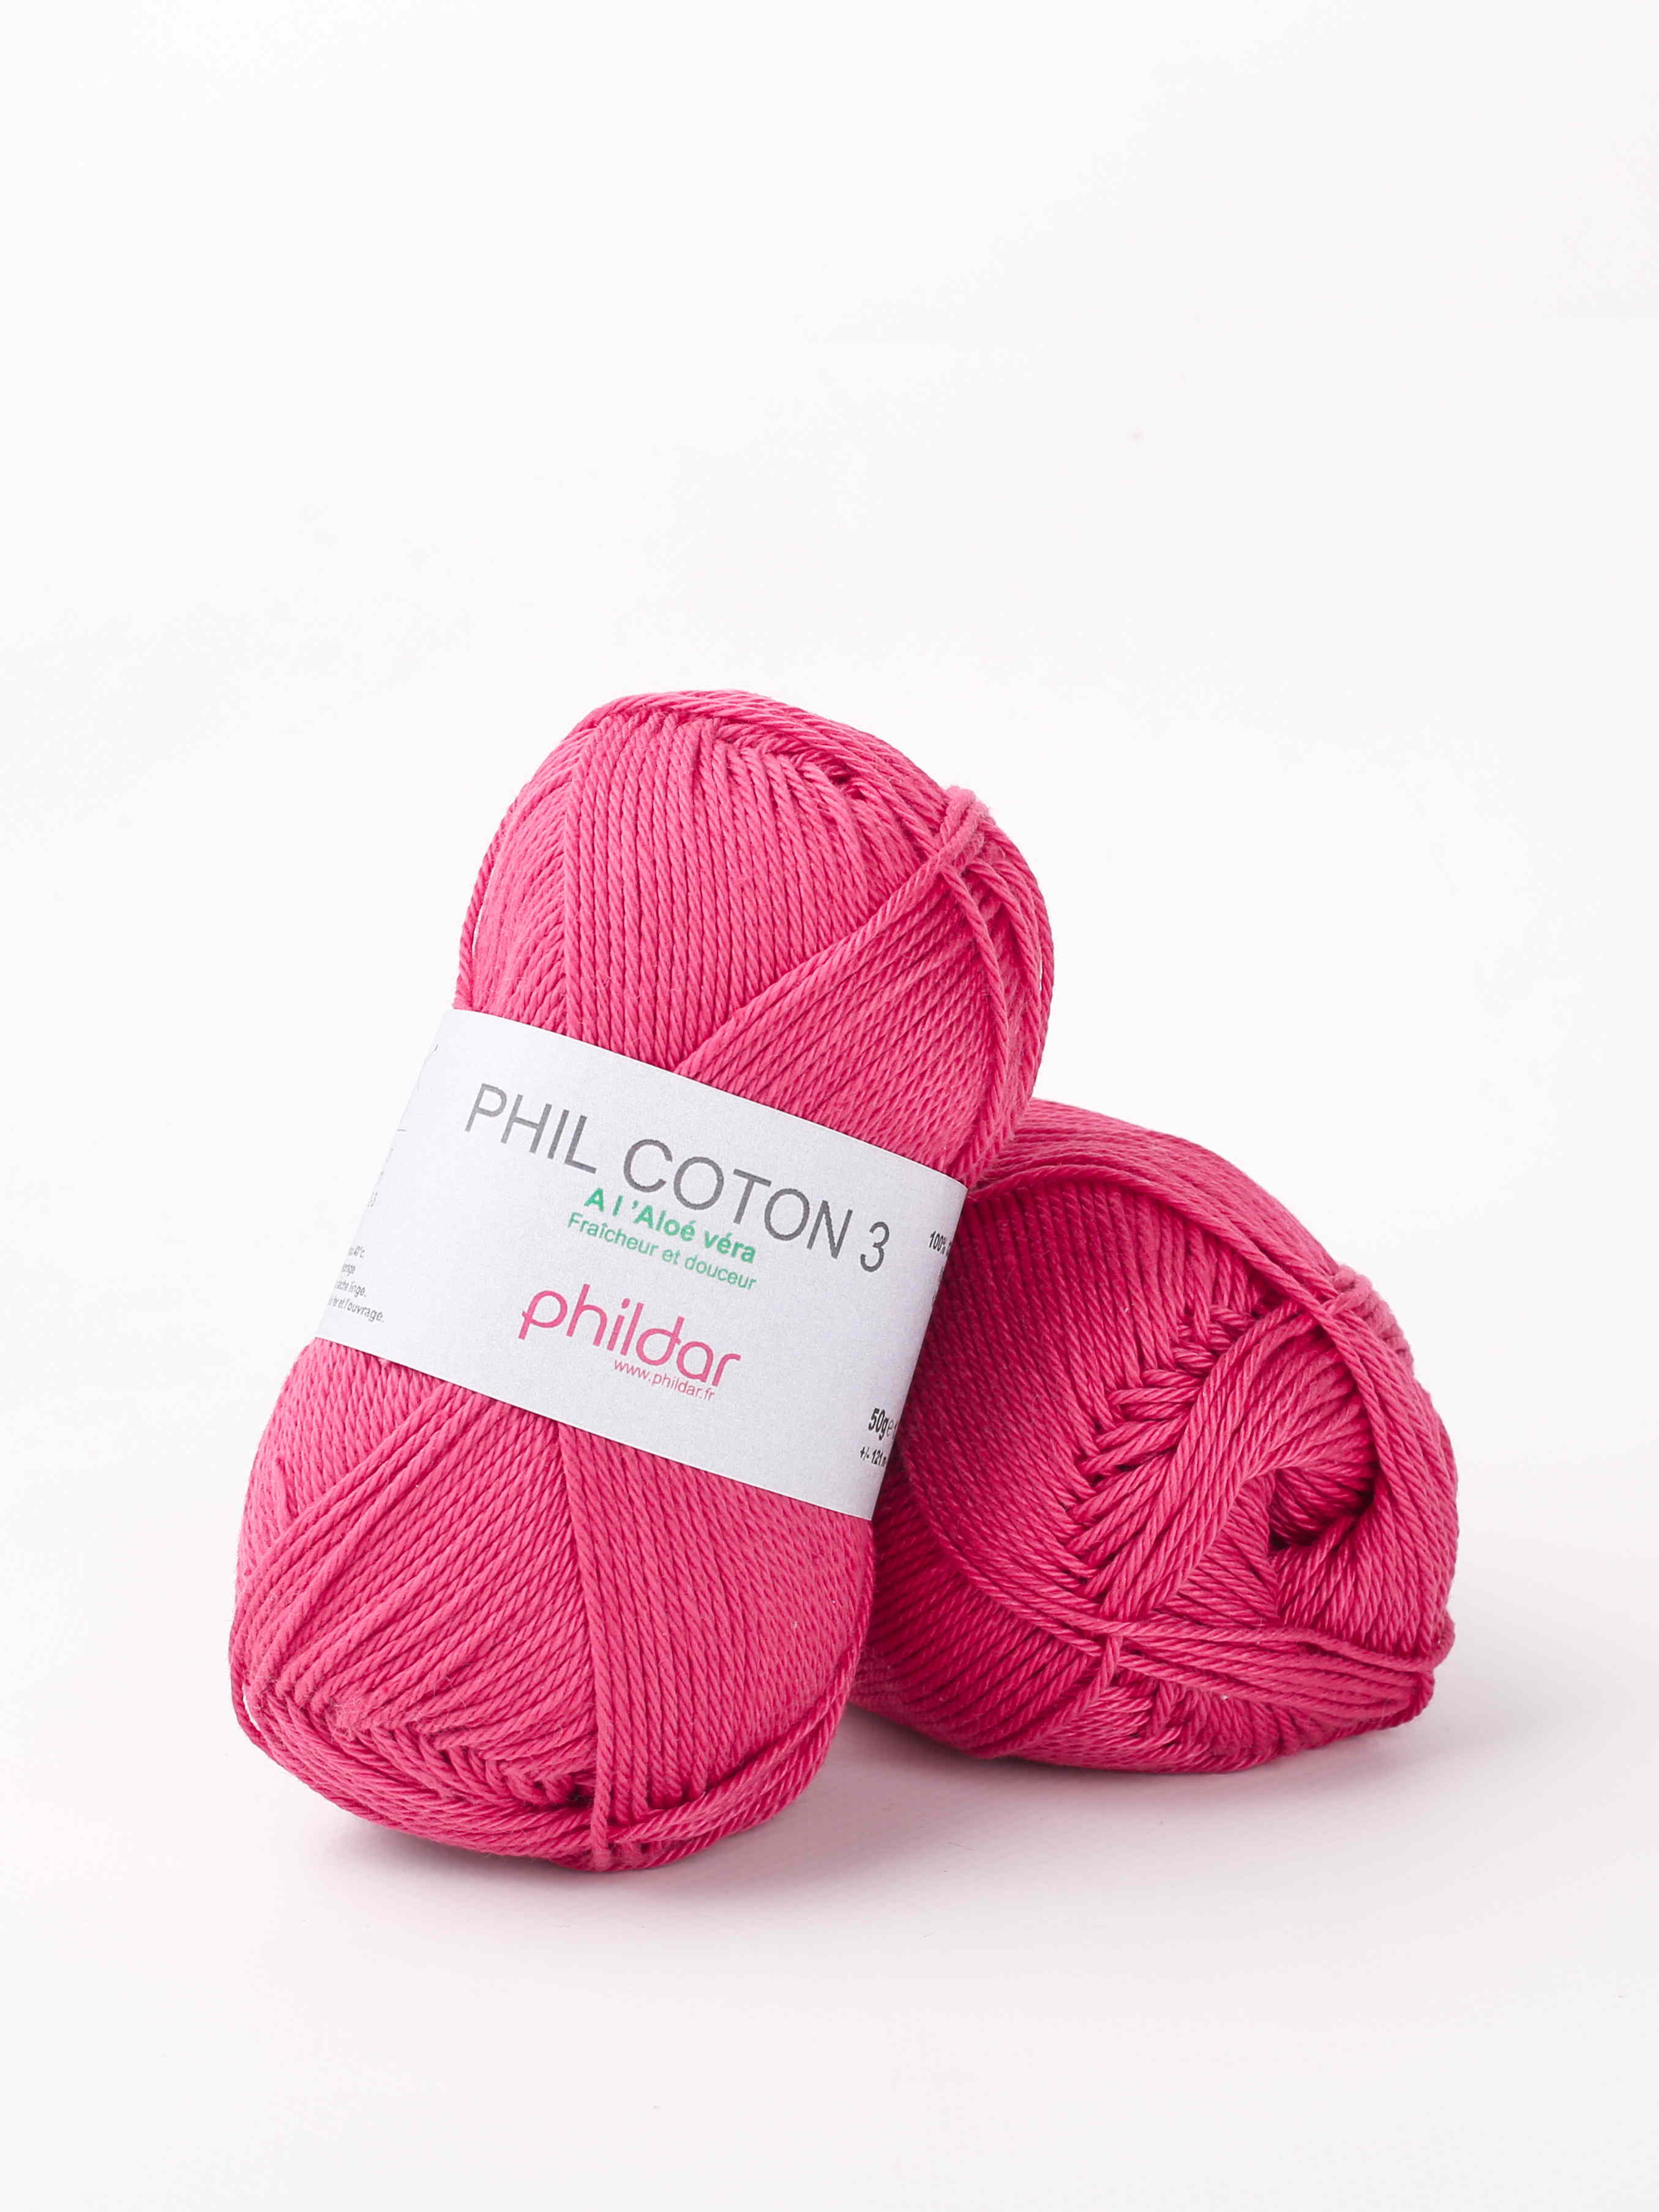 Wol;Phil Coton 4 Framboise